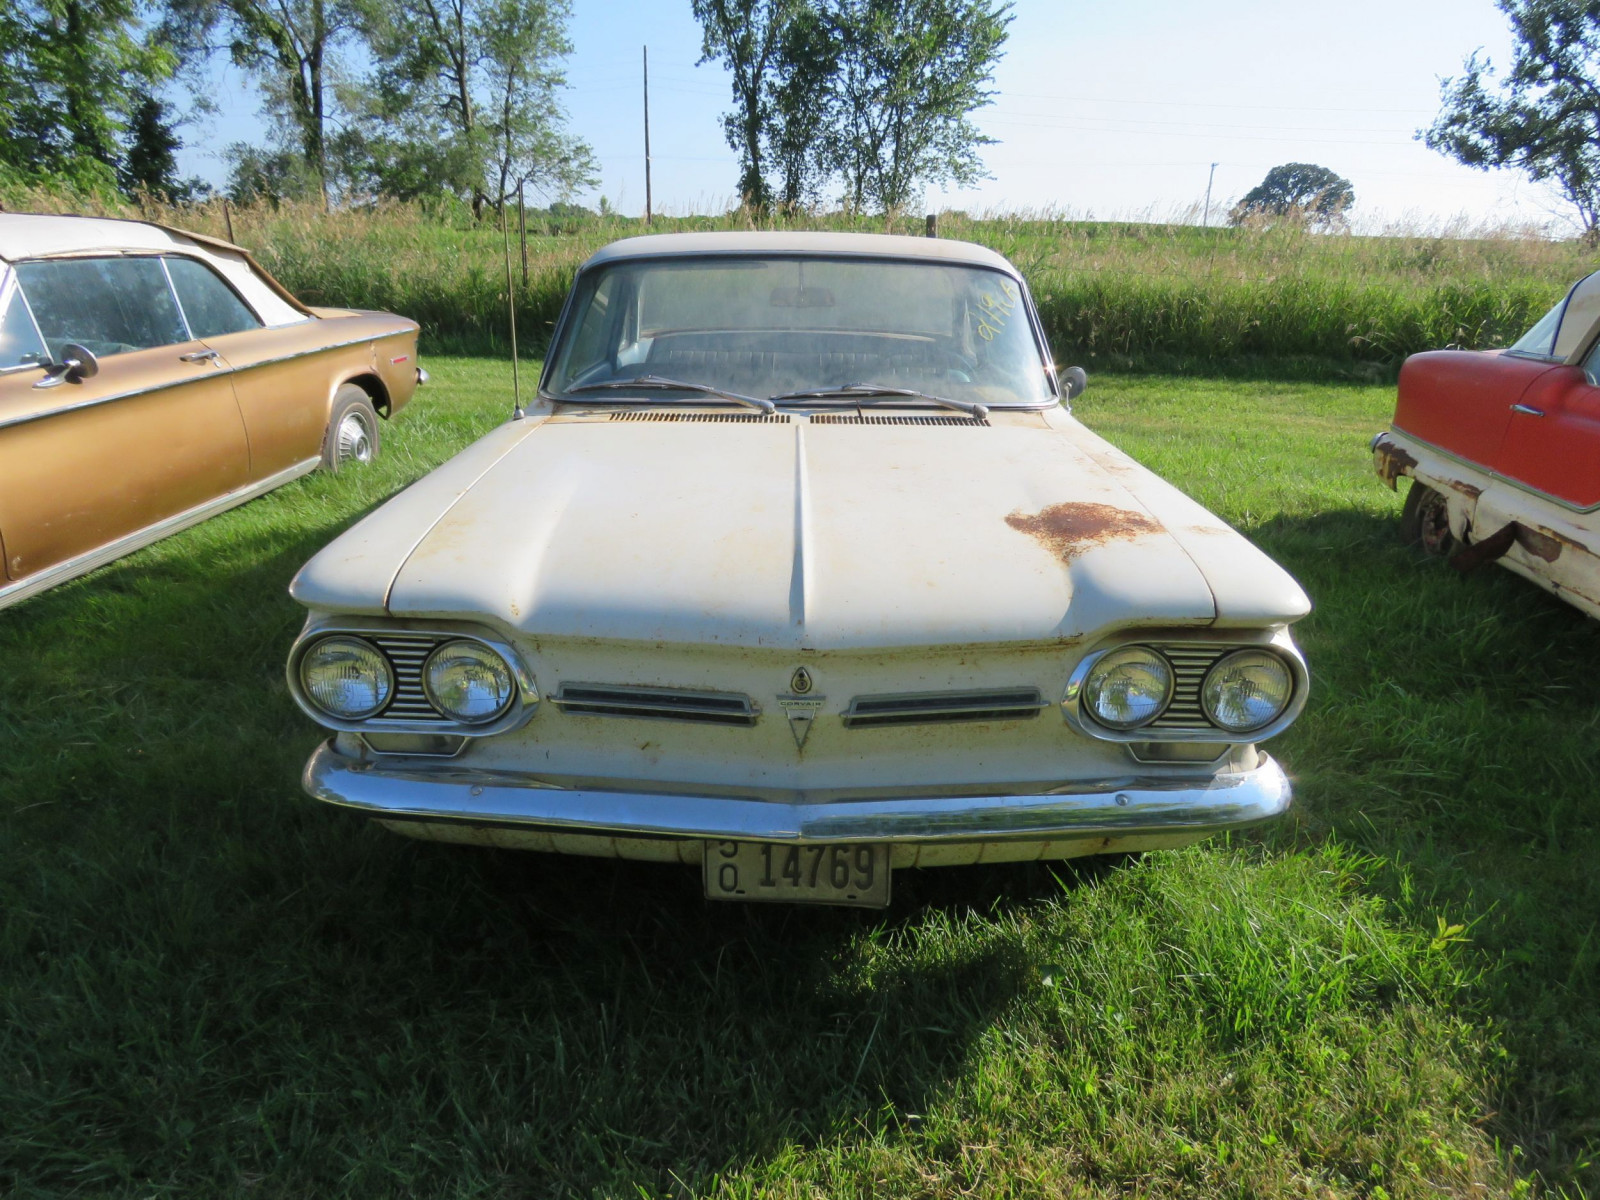 1962 Chevrolet Corvair Coupe - Image 2